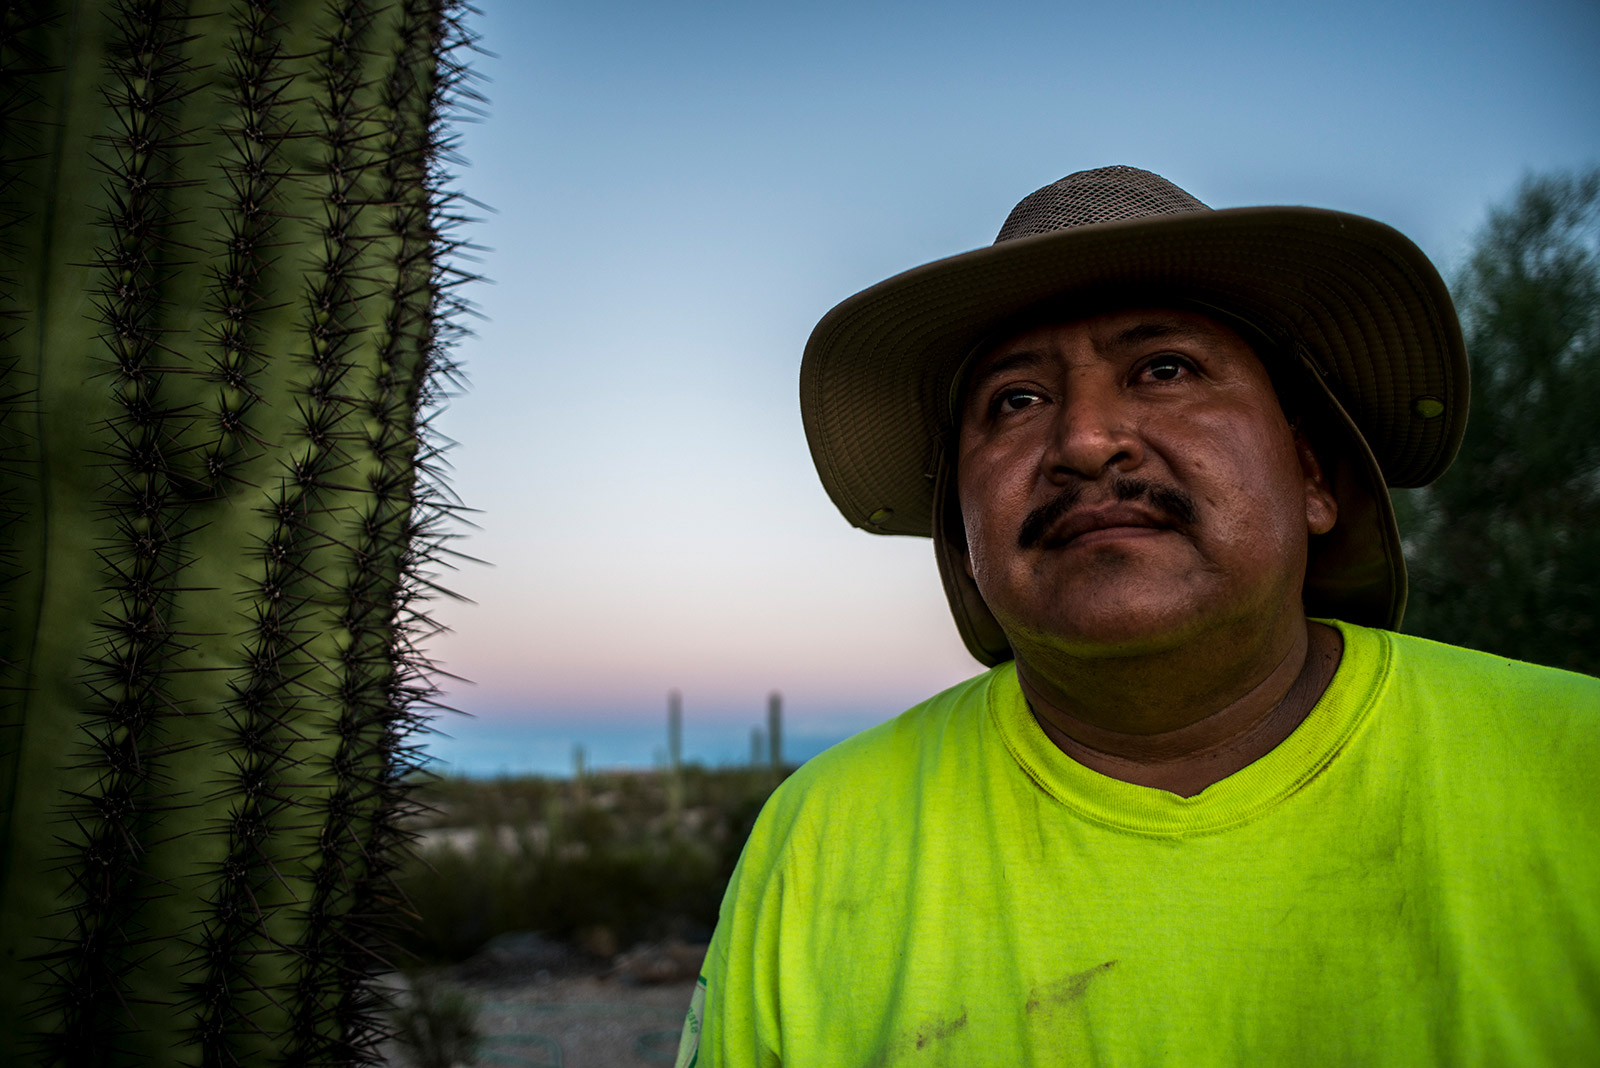 Ely Ortiz, founder of Aguilas Del Desierto, poses for a portrait on Aug. 26, 2017, at the base camp outside Ajo, Arizona, where he and nearly two dozen others prepare for daylong treks into the desert to search for missing migrants. <em>(Brandon Quester/inewsource)</em>